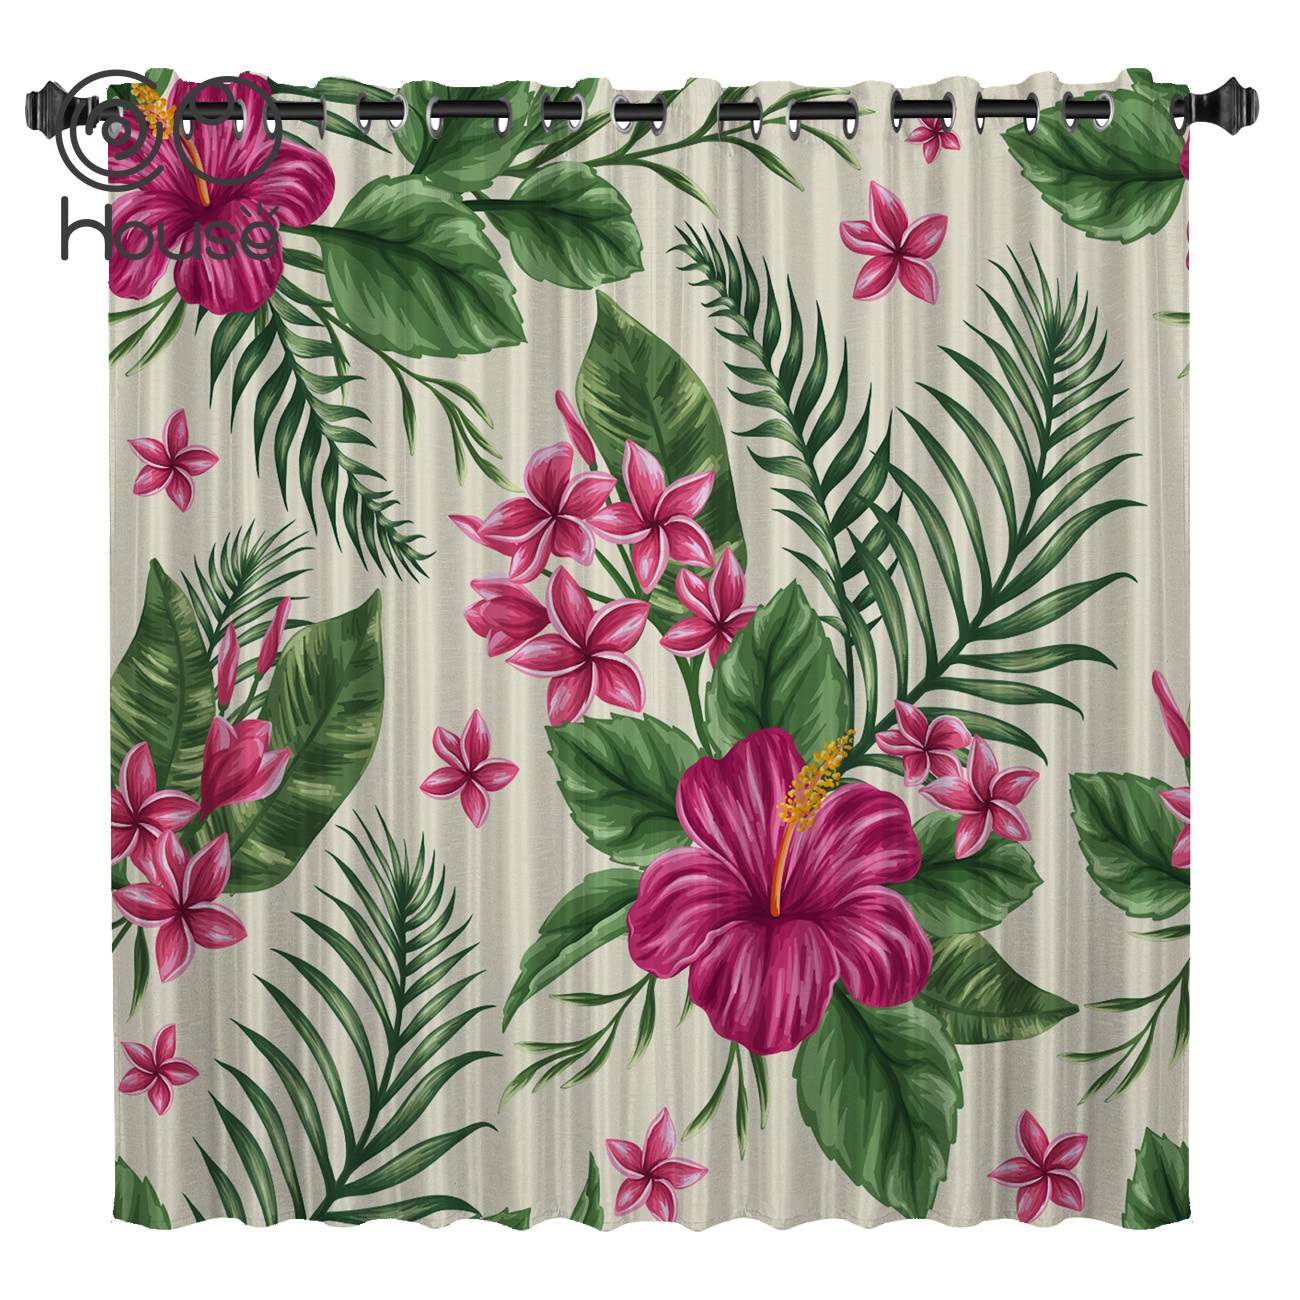 COCOHouse Tropical Flowers Window Treatments Curtains Valance Window Blinds Bathroom Blackout Outdoor Kitchen Fabric Floral Kids